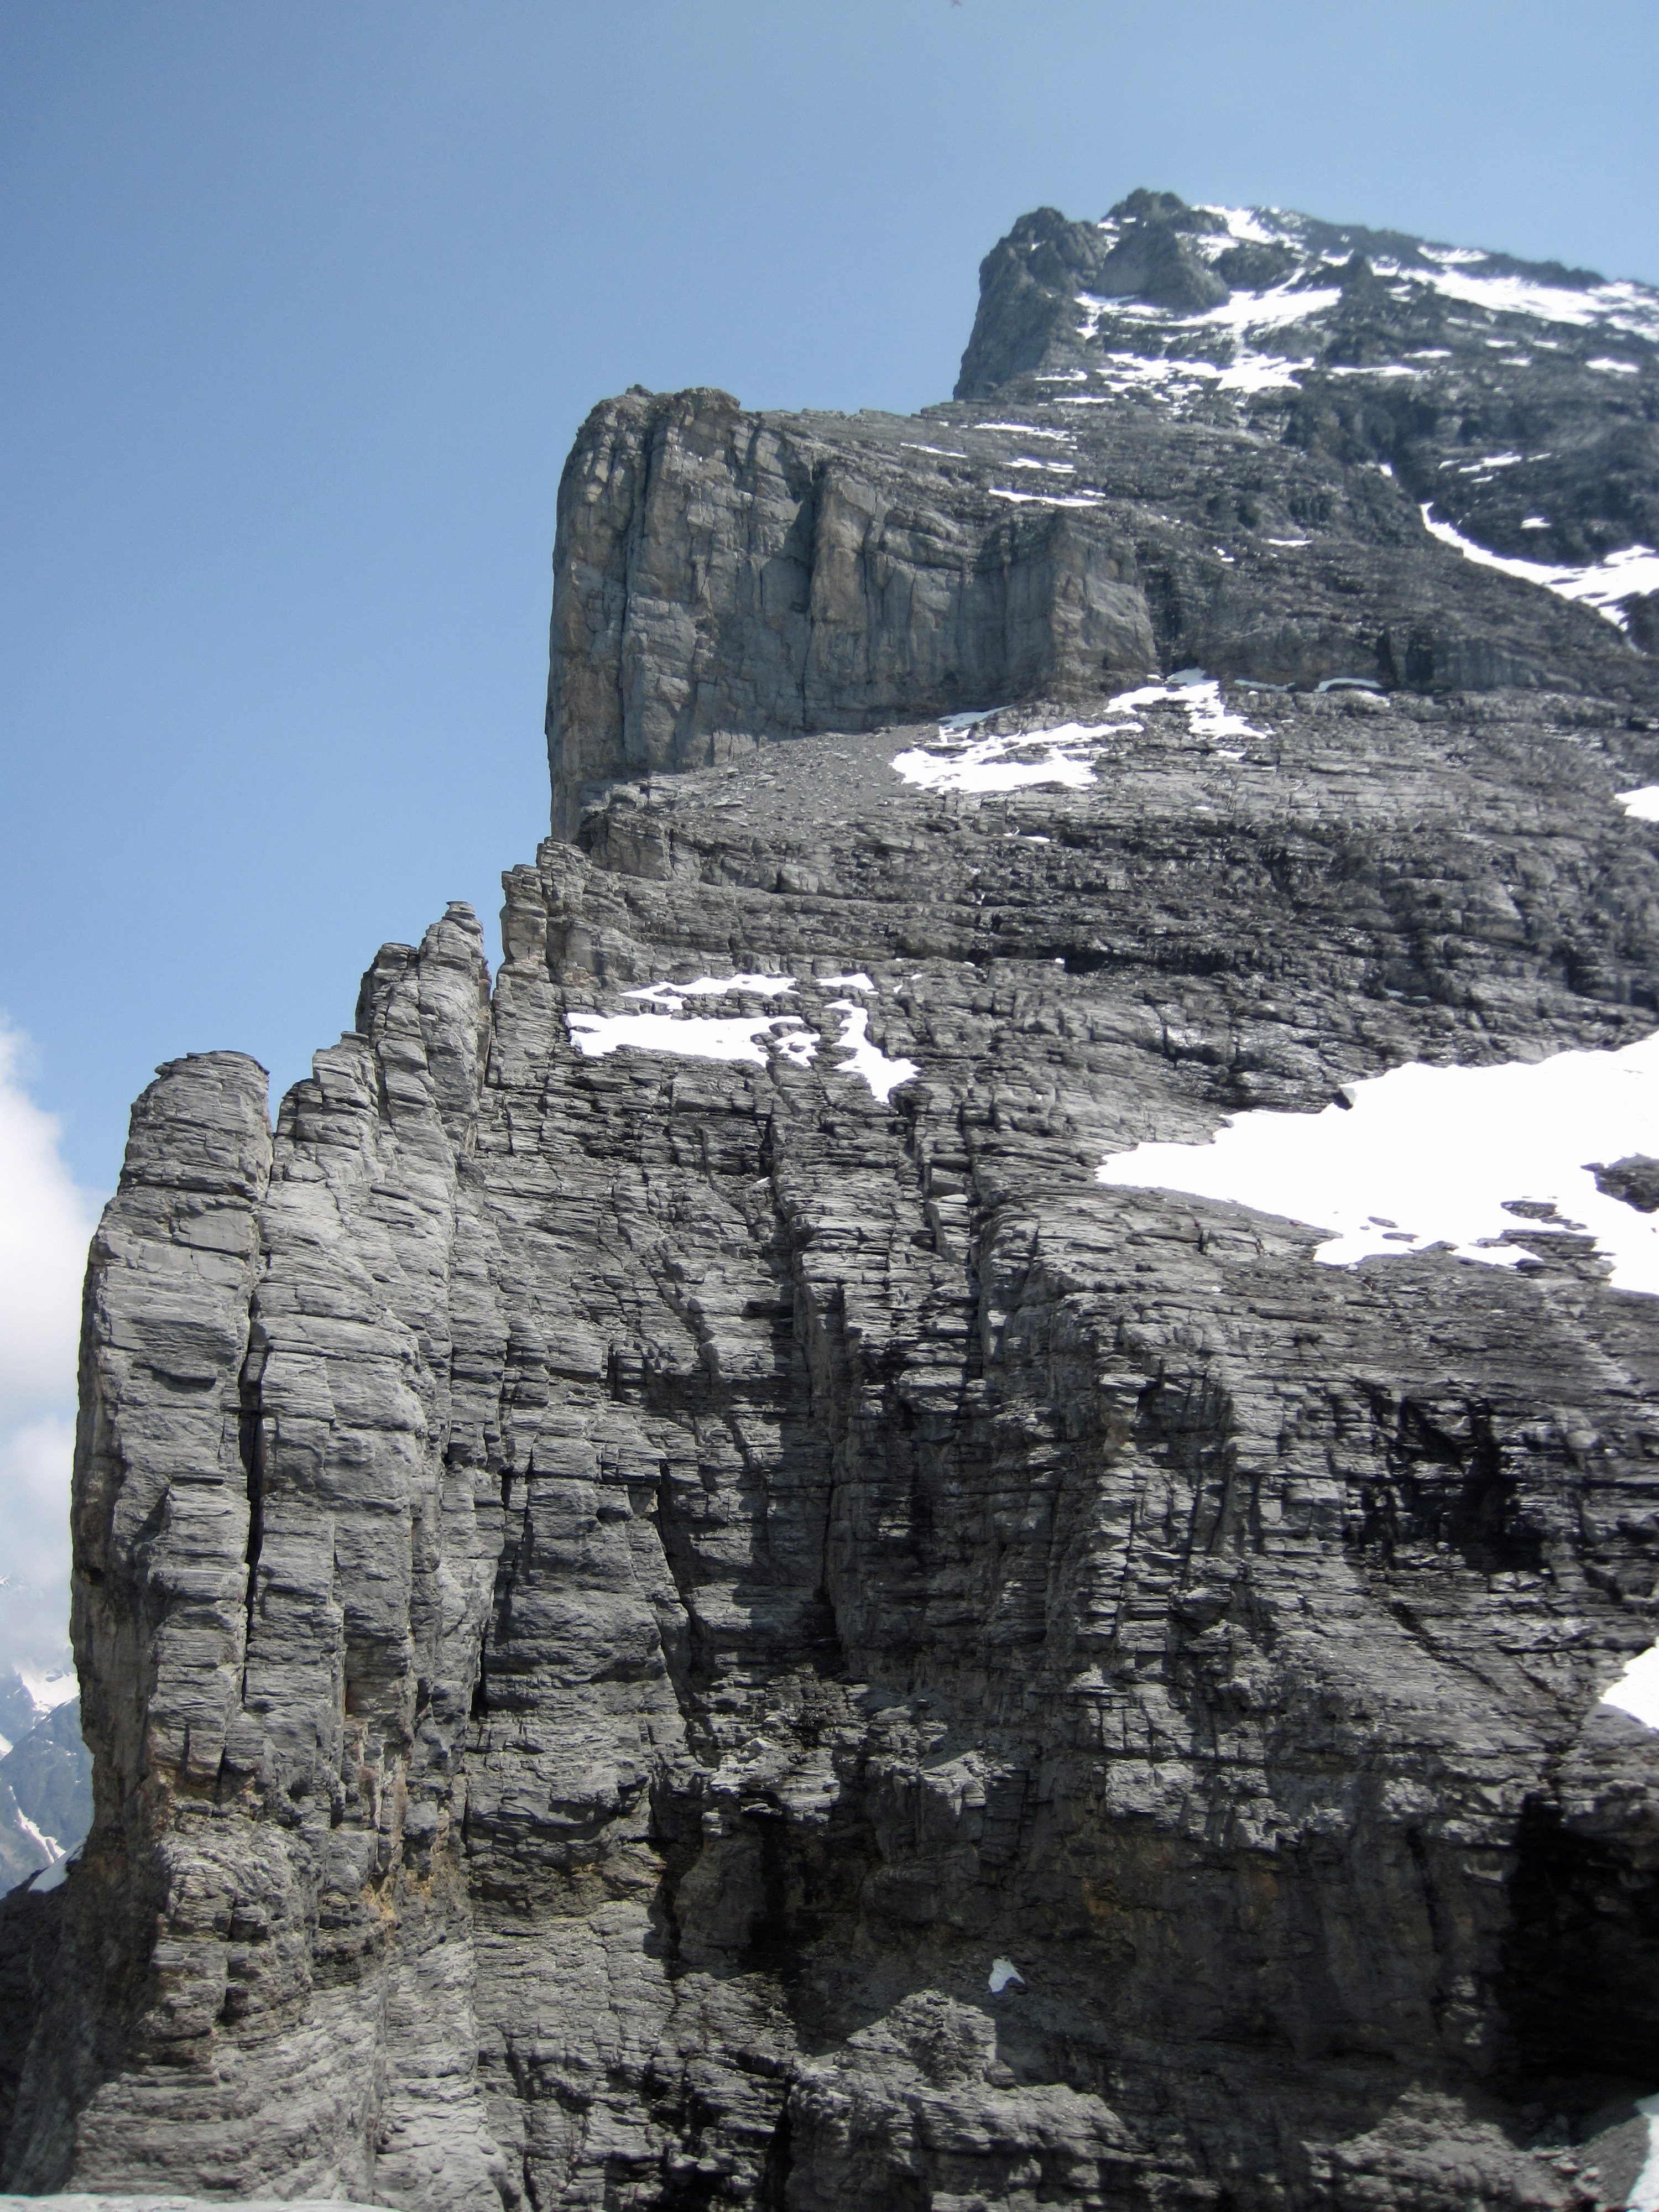 The West Face Of The Eiger From The Summit Of The Rotstock. & Eiger Doors Review u0026 The Eiger Collection By Mammut: GearLimits ... pezcame.com